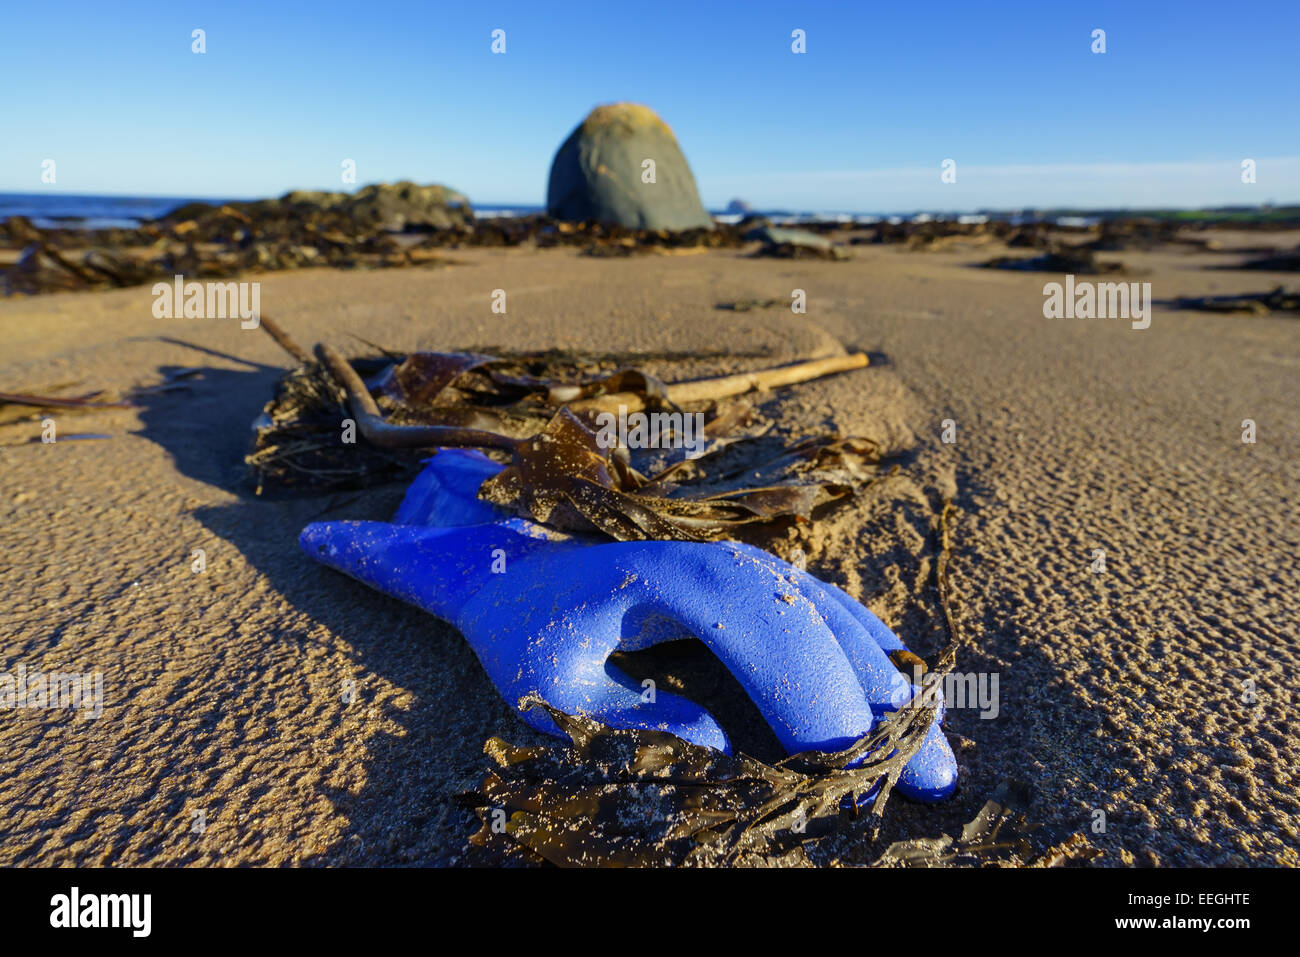 A blue glove washed up on a beach in Scotland. - Stock Image